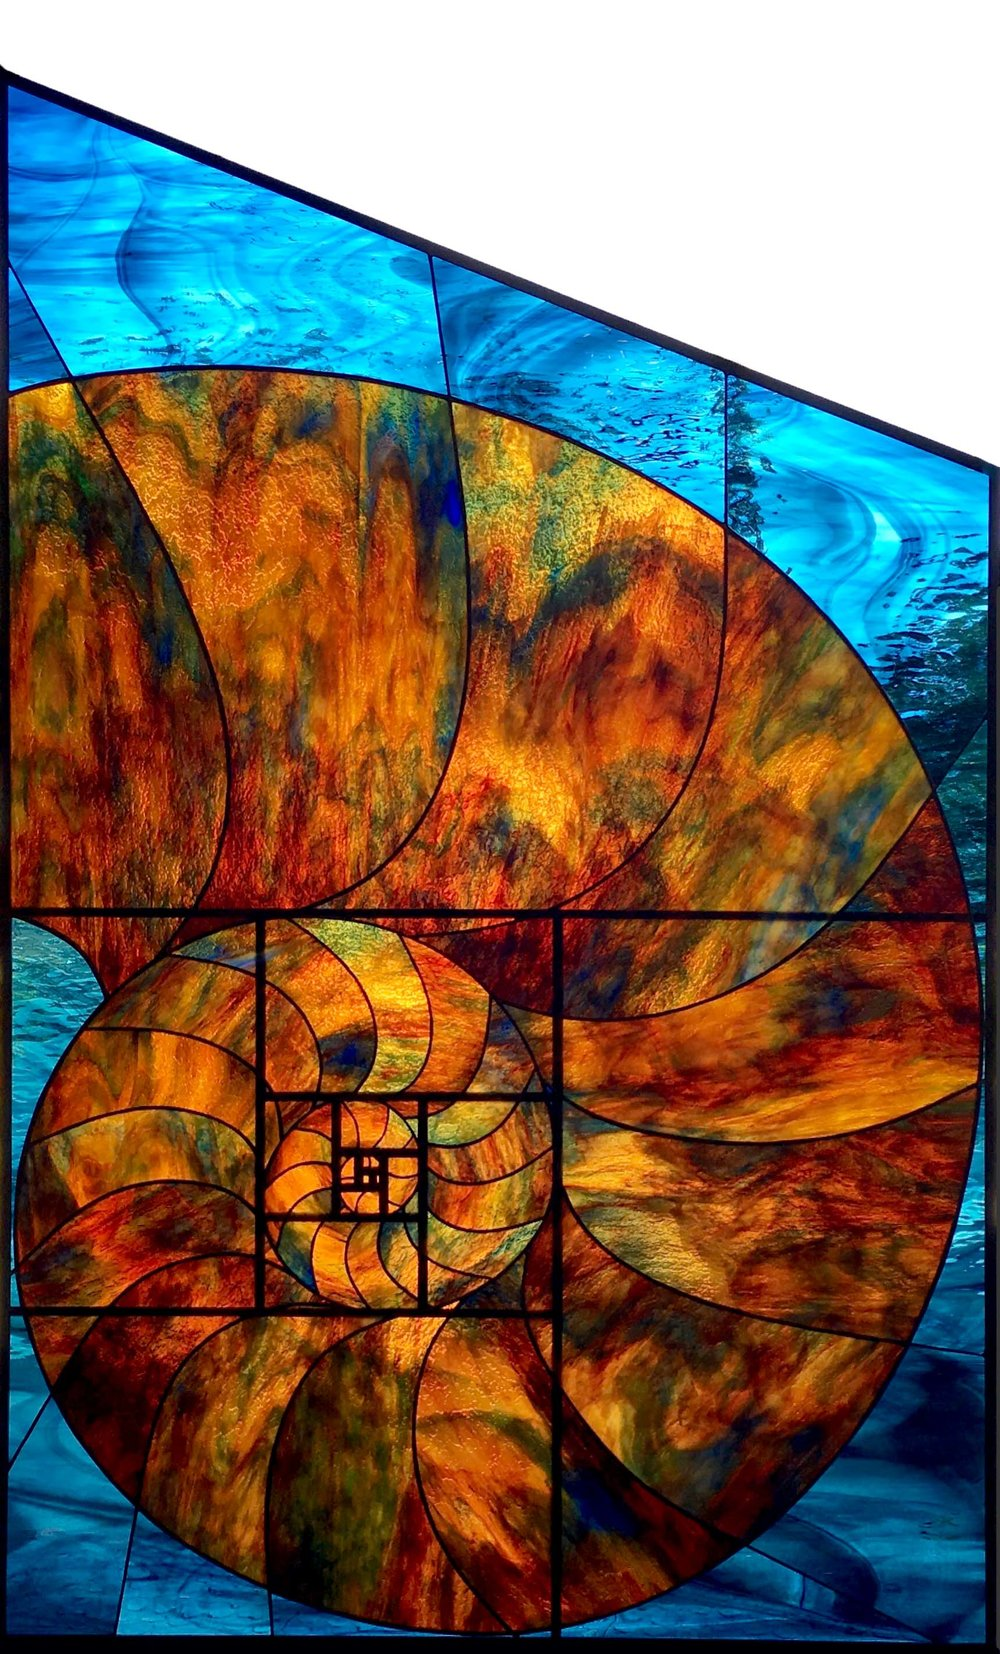 nautilus golden spiral leaded glass stained glass studio palo alto atherton california san francisco san jose legacy glass.jpg